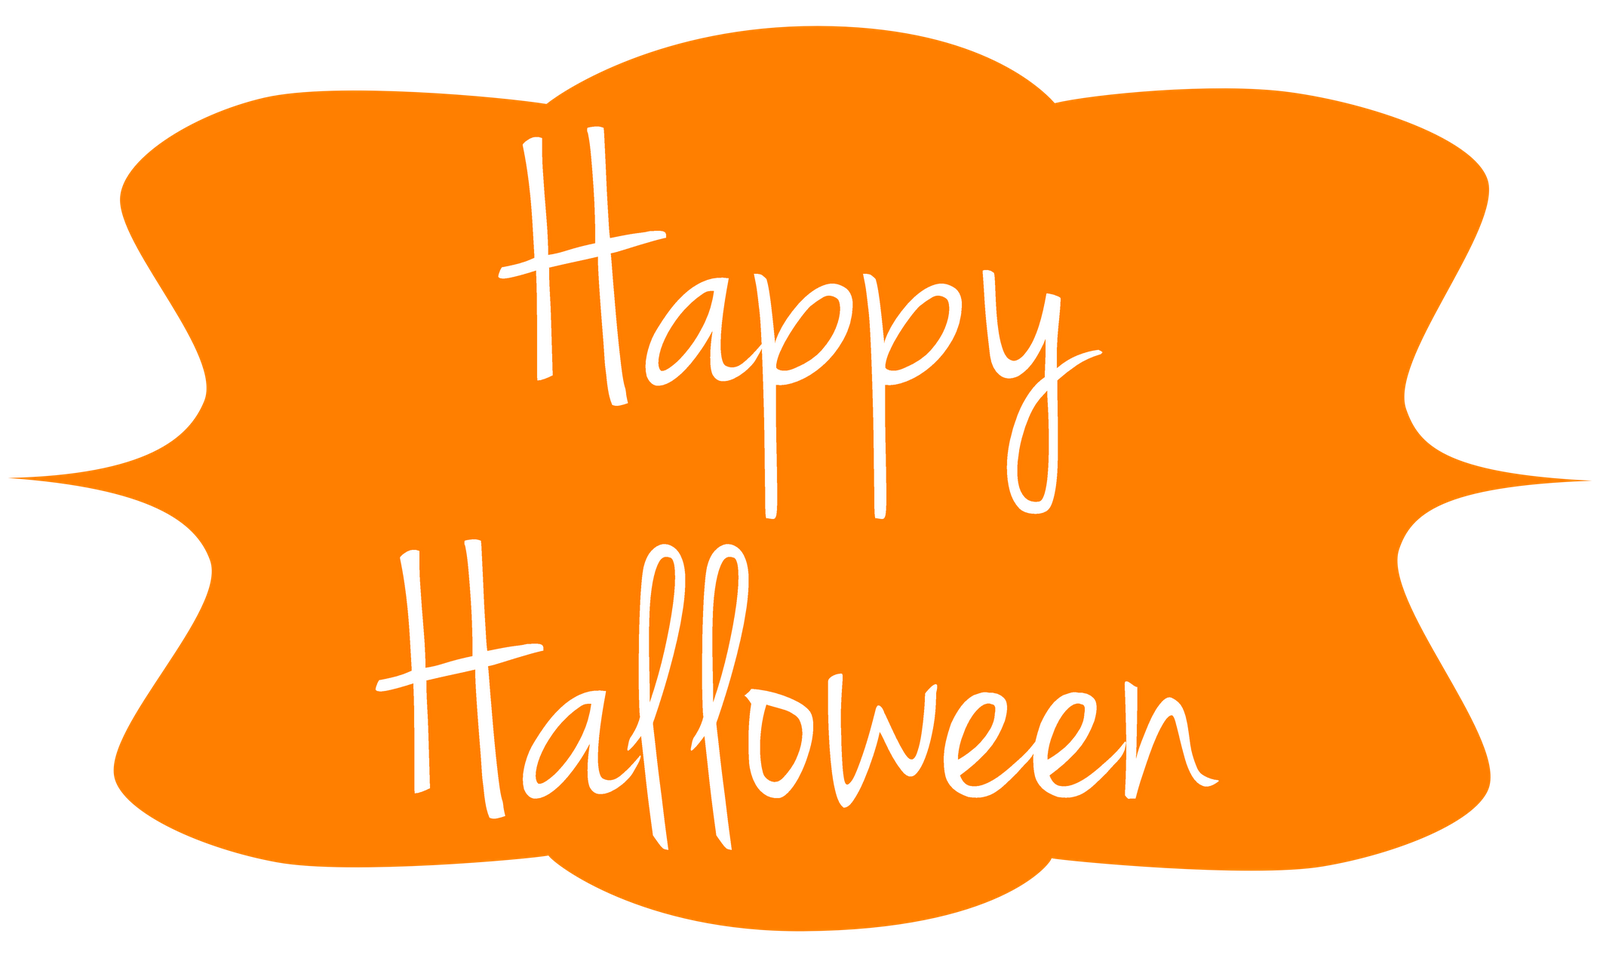 Happy birthday halloween clipart image library stock happy halloween clipart - Free Large Images image library stock